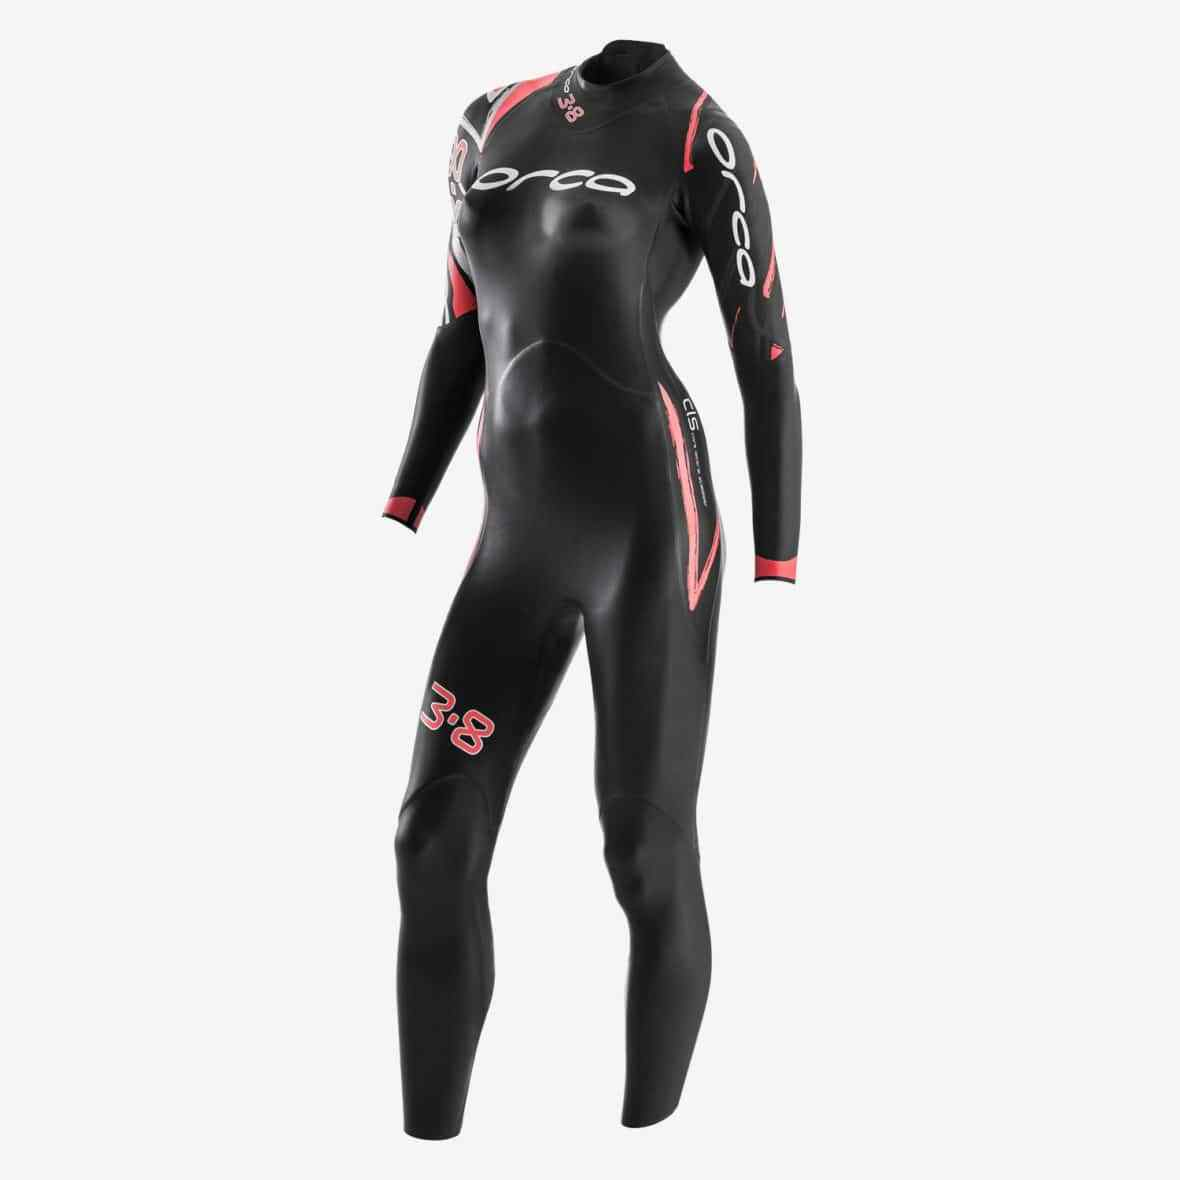 100 Off Brand New 2018 Orca 3.8 Women's Triathlon Wetsuit